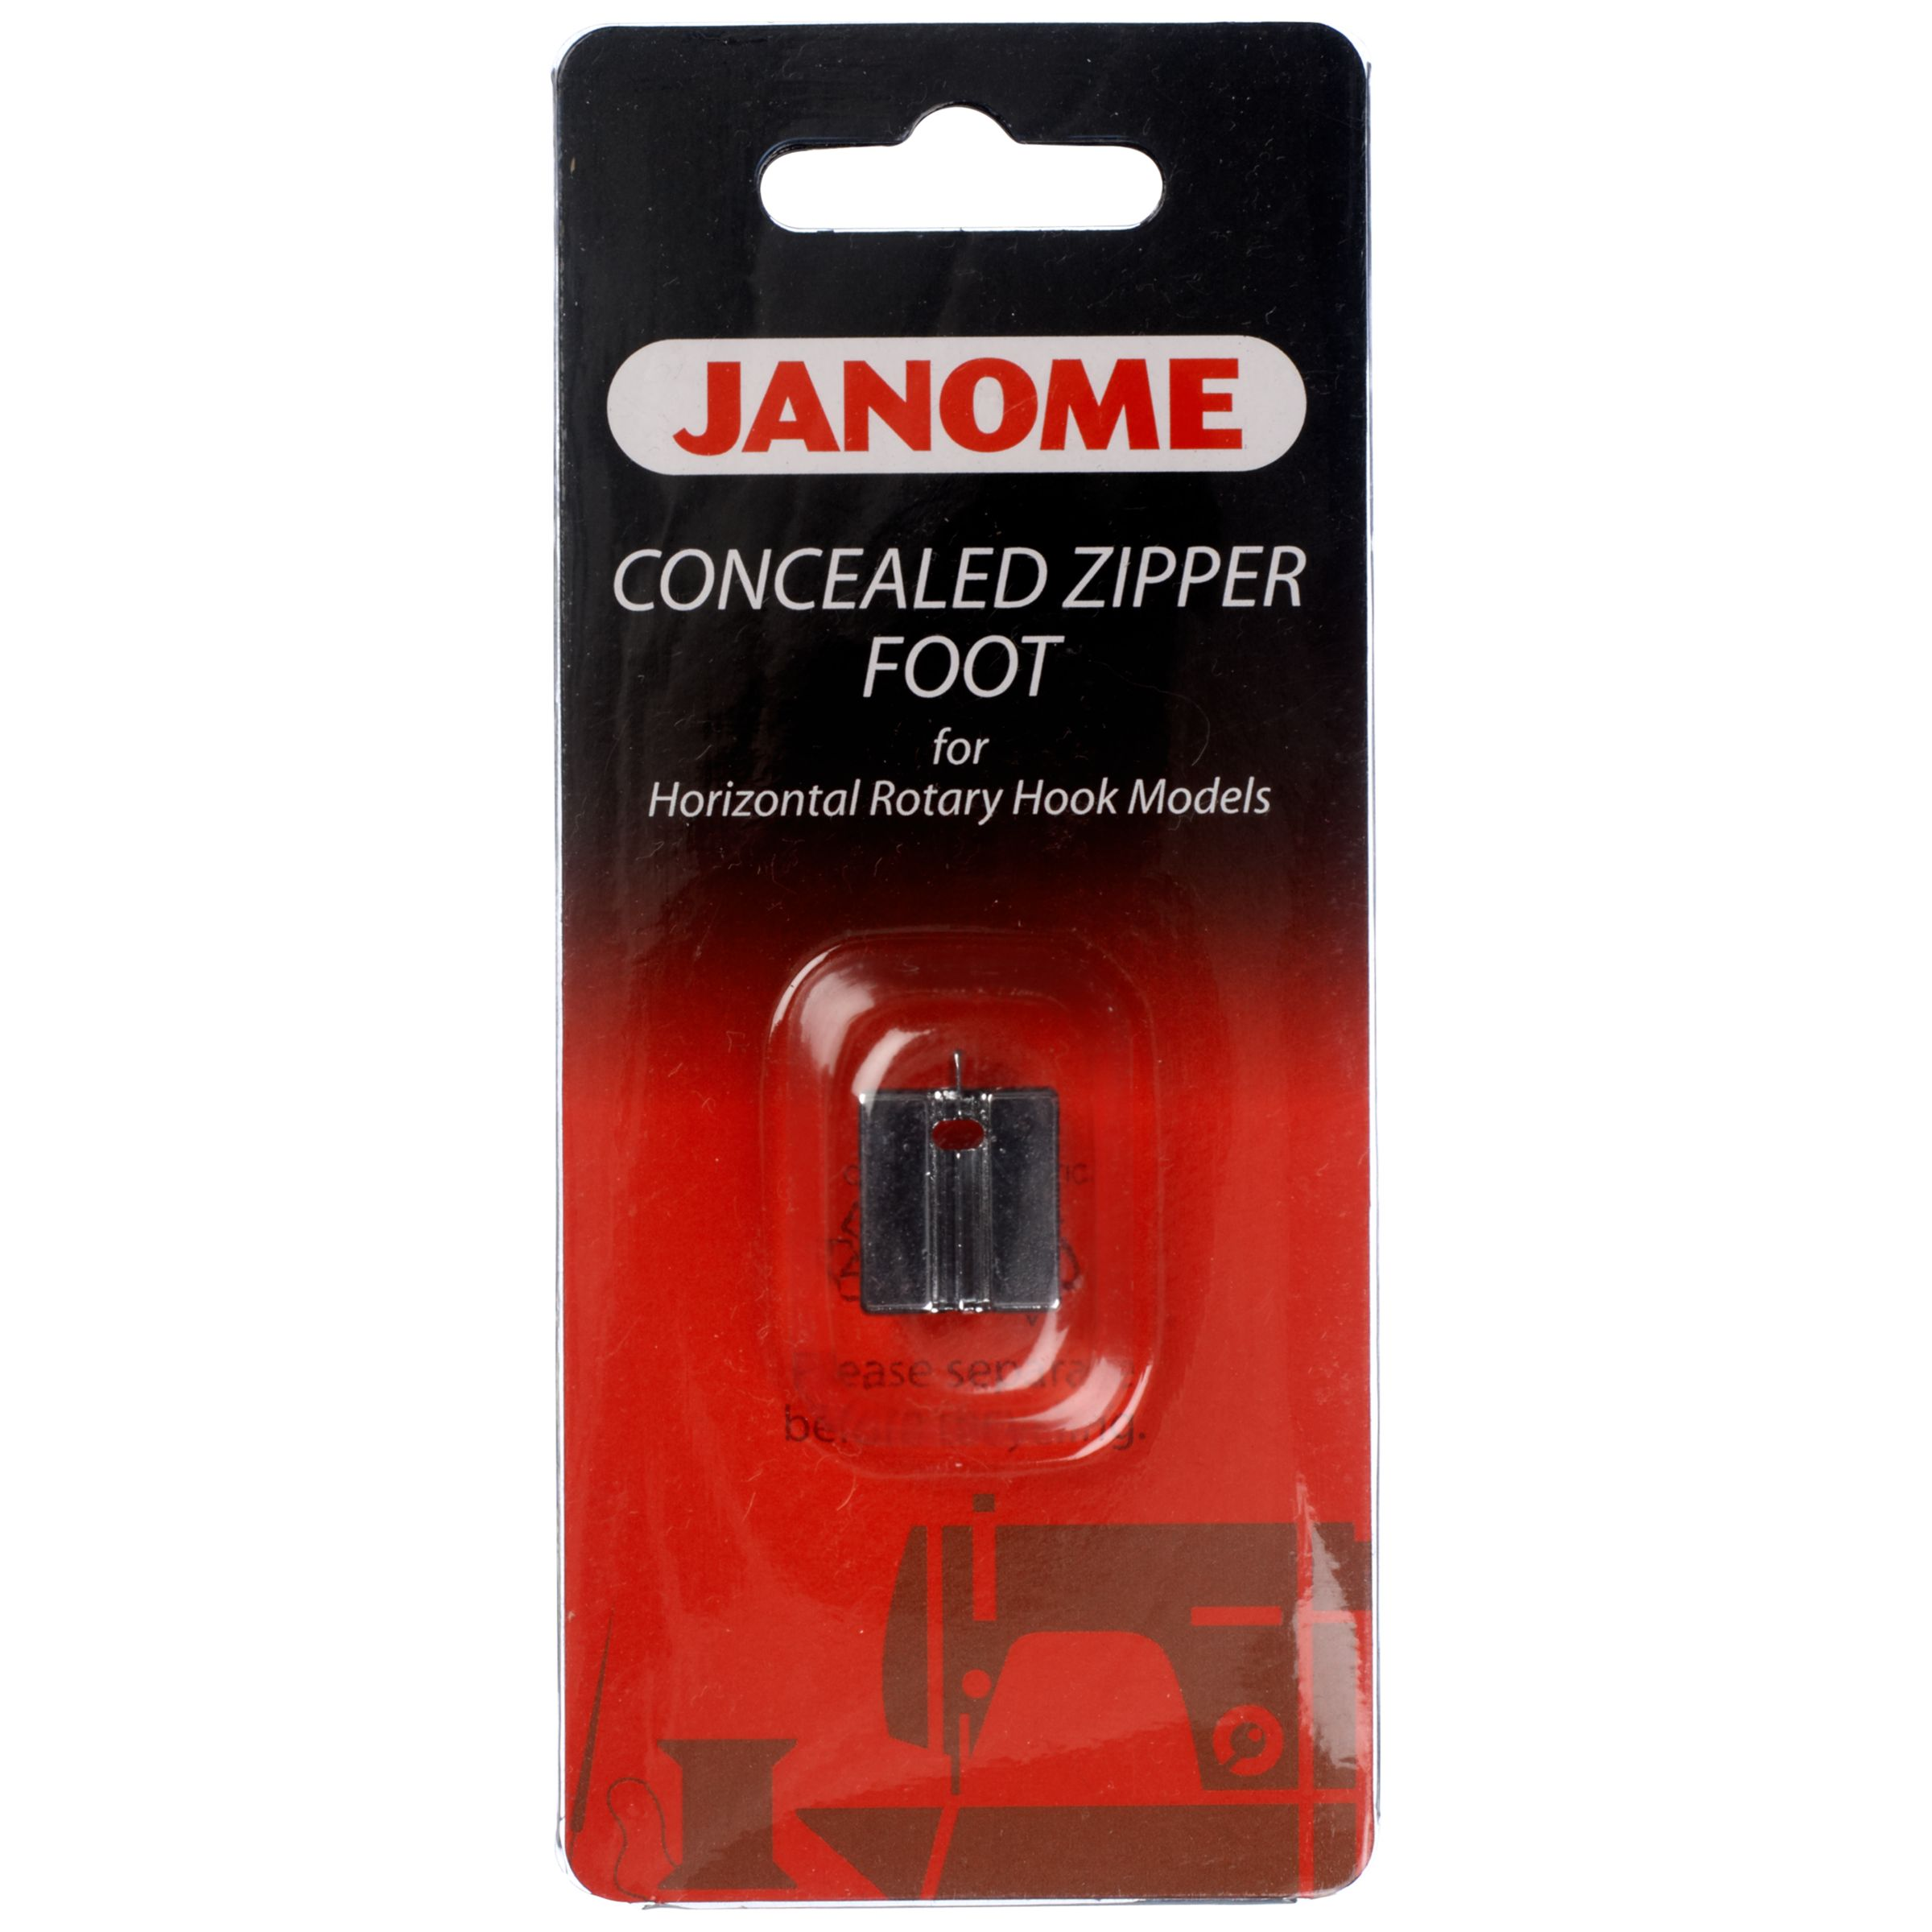 Janome Janome Concealed Zipper Foot, Horizontal Rotary Hook Models